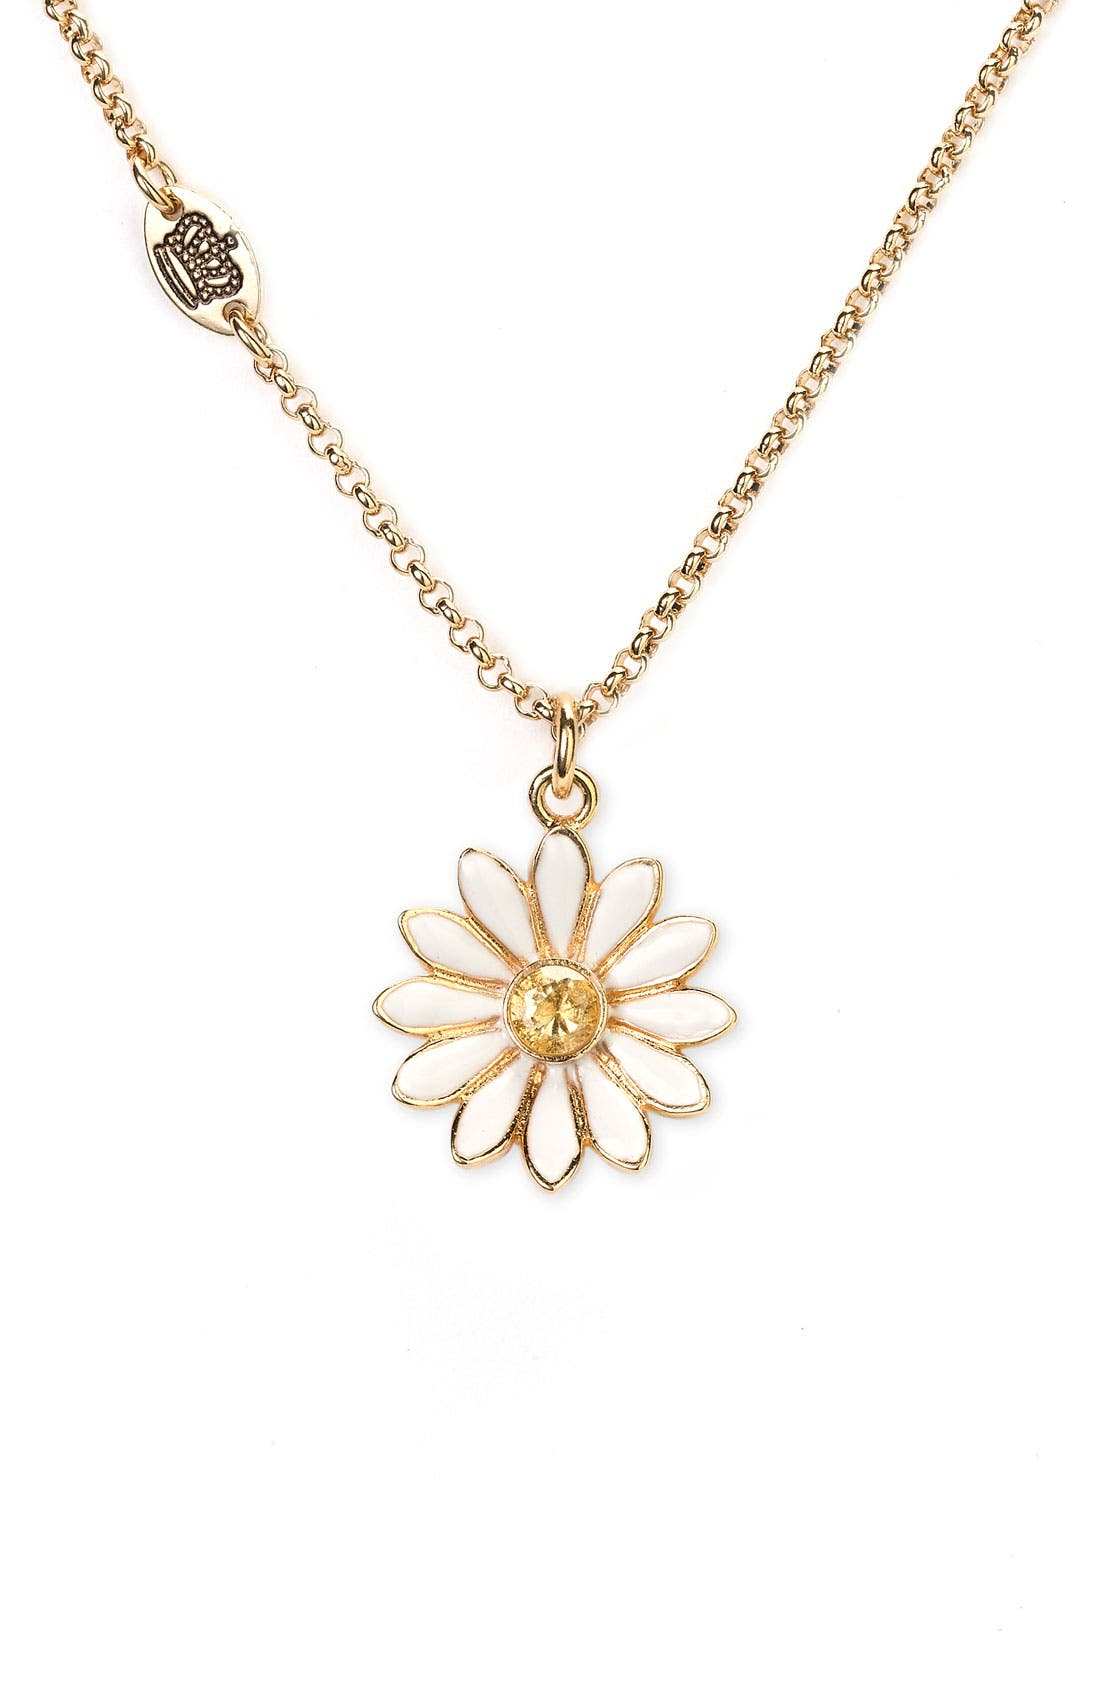 Alternate Image 1 Selected - Juicy Couture 'Wish - Daisy' Necklace